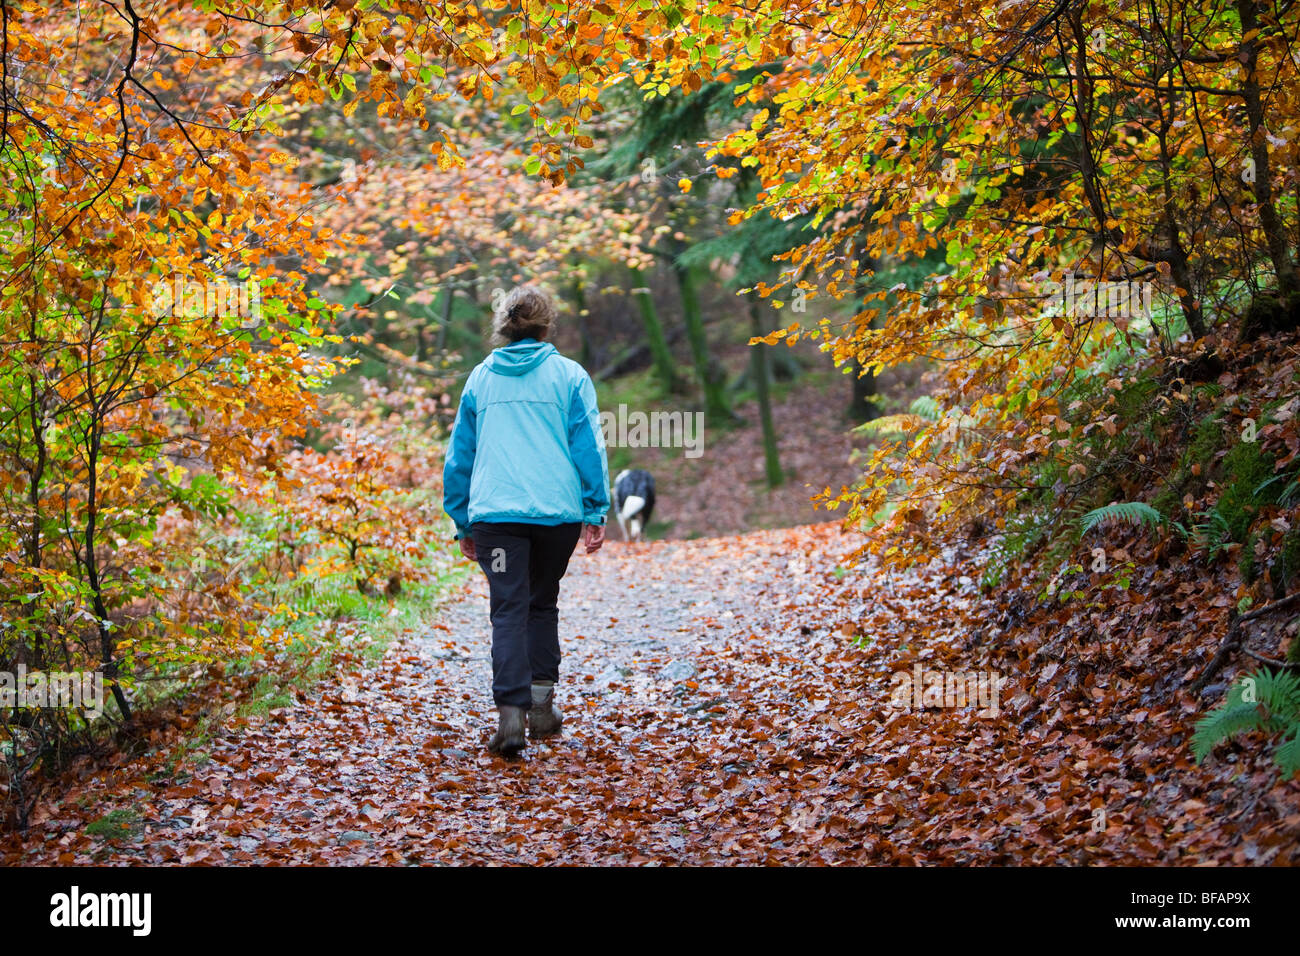 A woman walking through a Beech woodland near Tarn Howes in the Lake District, UK. - Stock Image